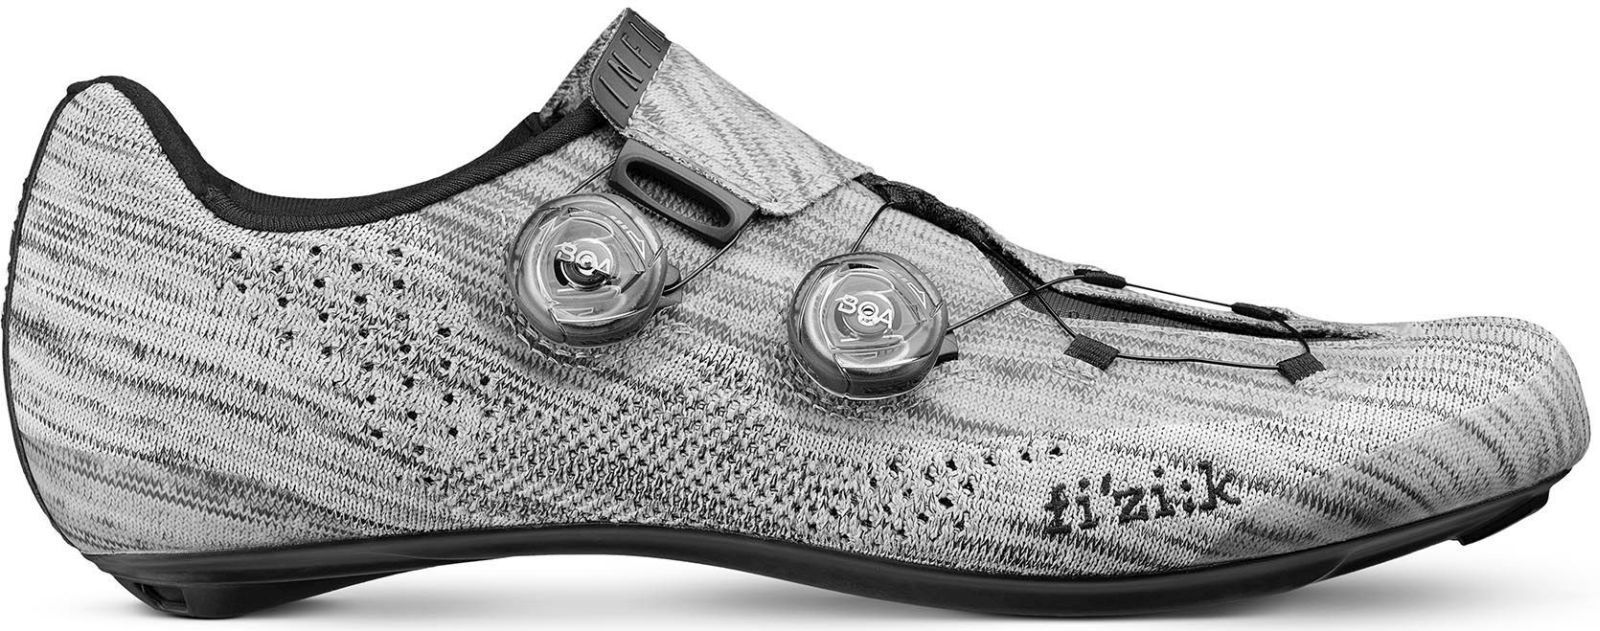 Fizik Infinito R1 Knit - grey knit/black 43